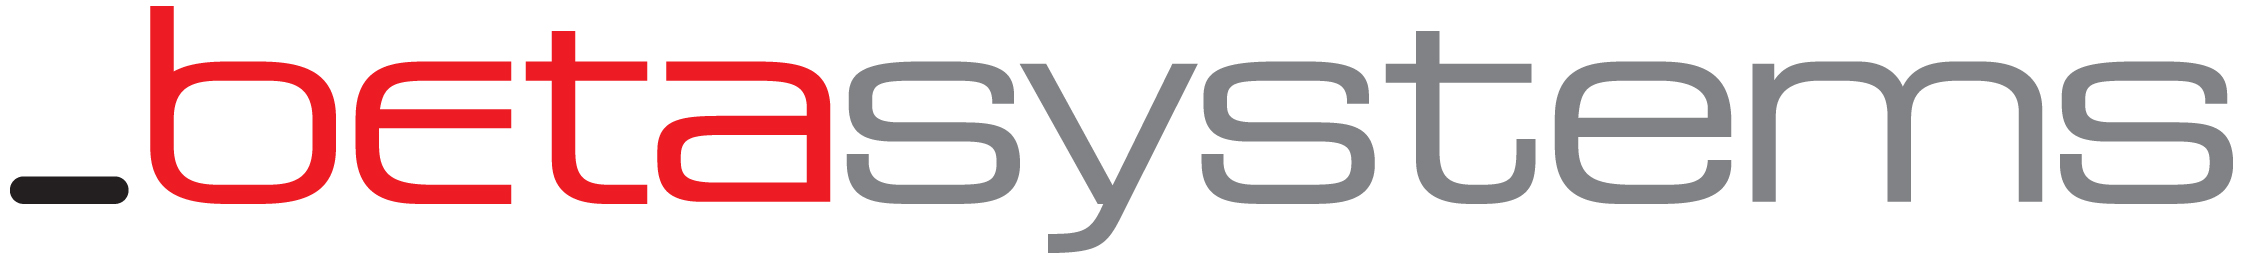 beta systems logo 2019